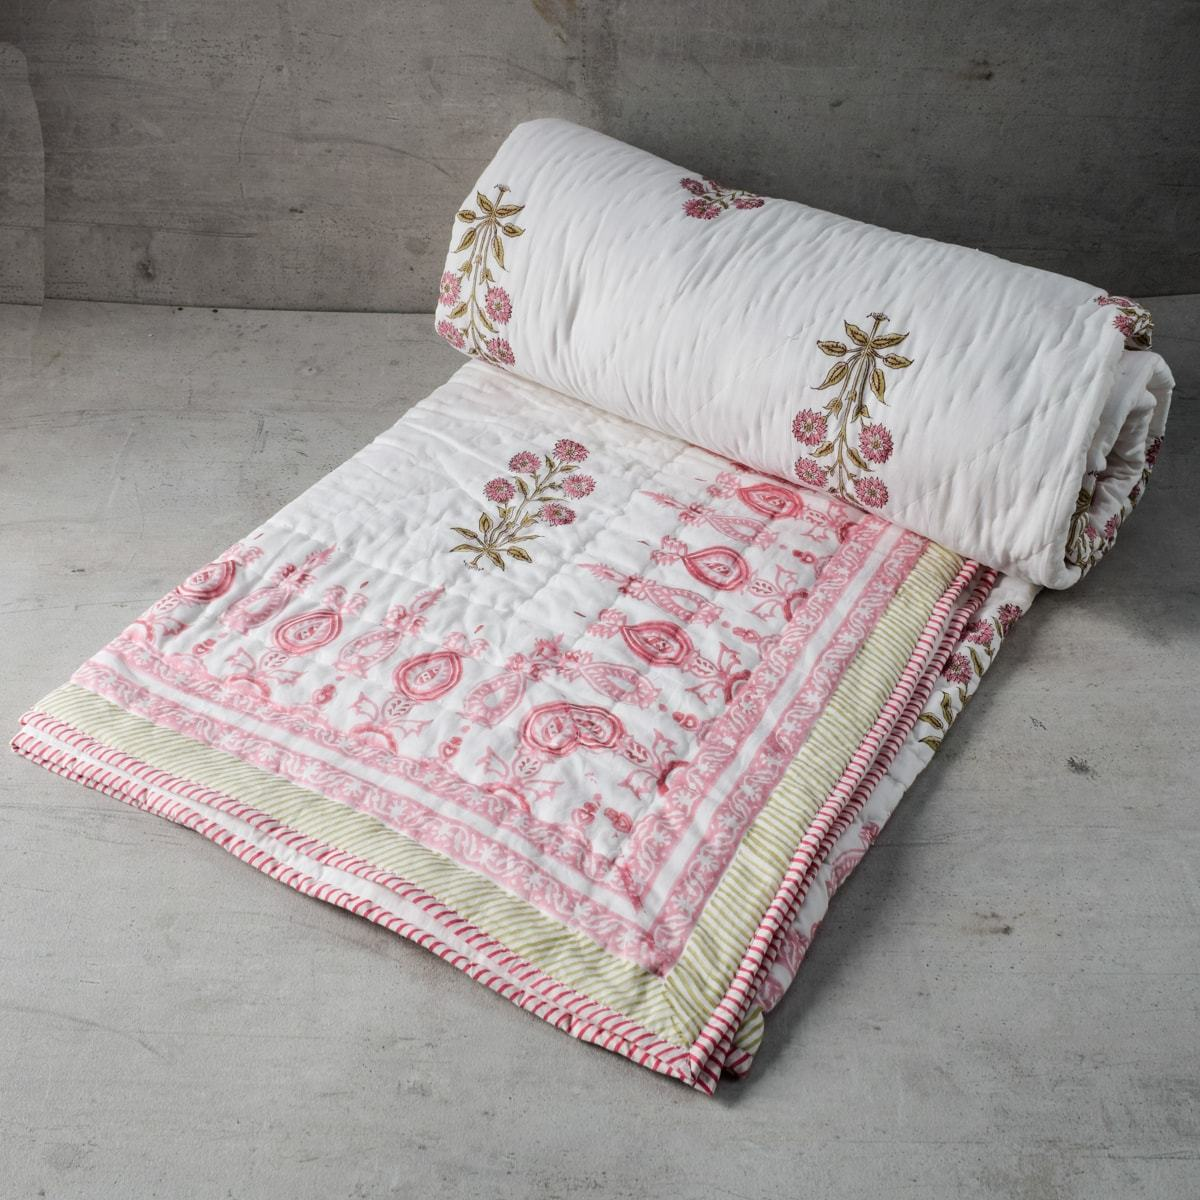 Blush Chrysanth Floral Pattern Hand Block Print Quilt - Home Artisan